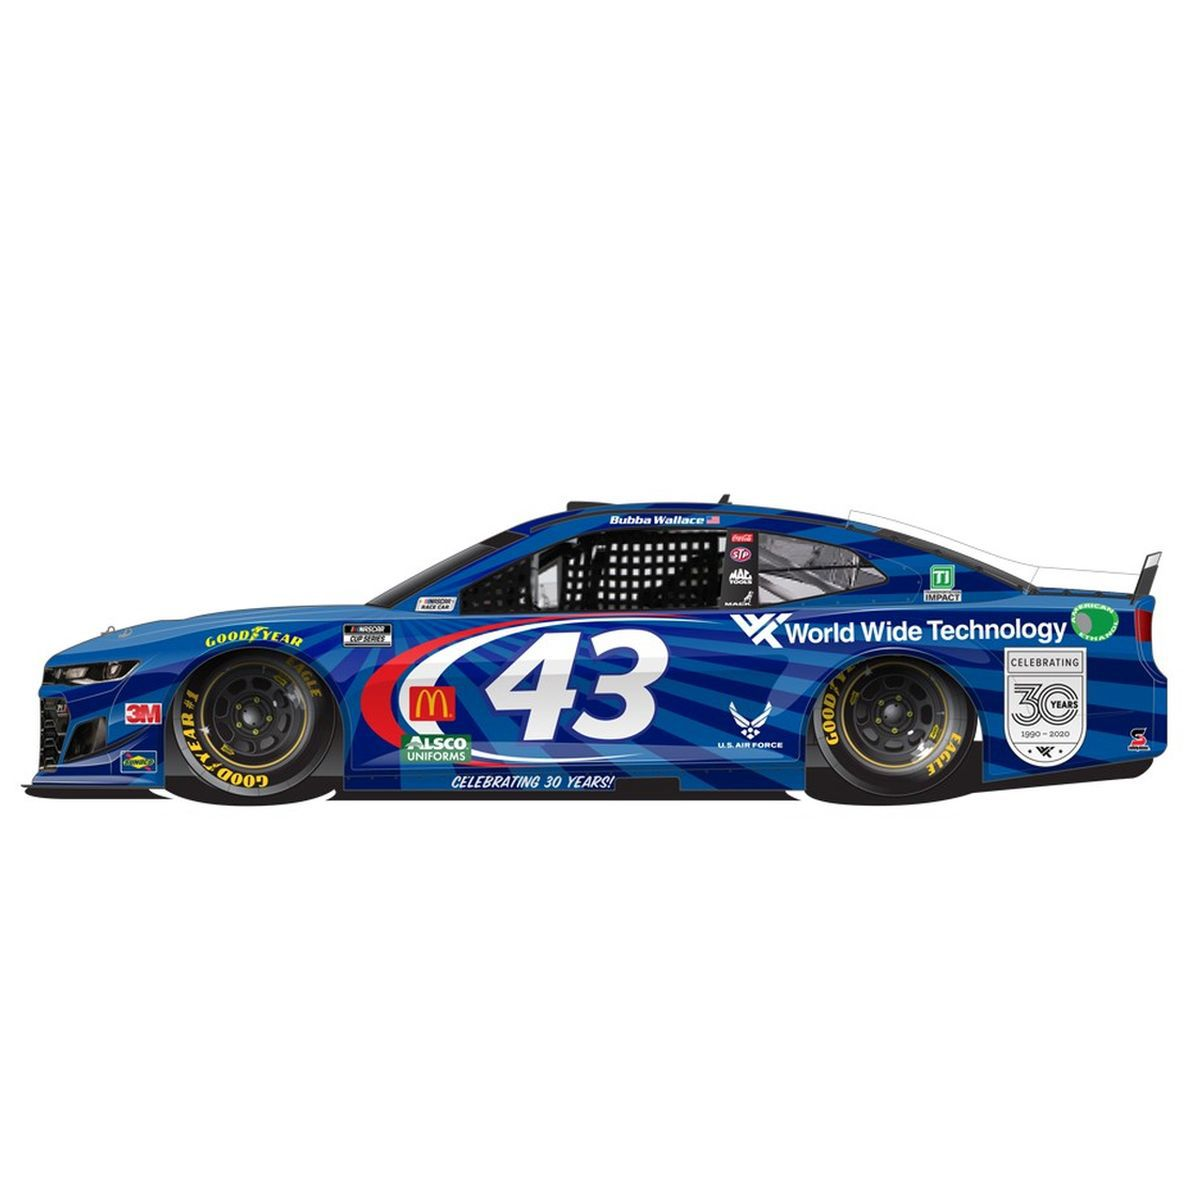 Bubba Wallace No. 43 World Wide Technology 30th Anniversary NASCAR Cup Series 1:24 HO Die-Cast